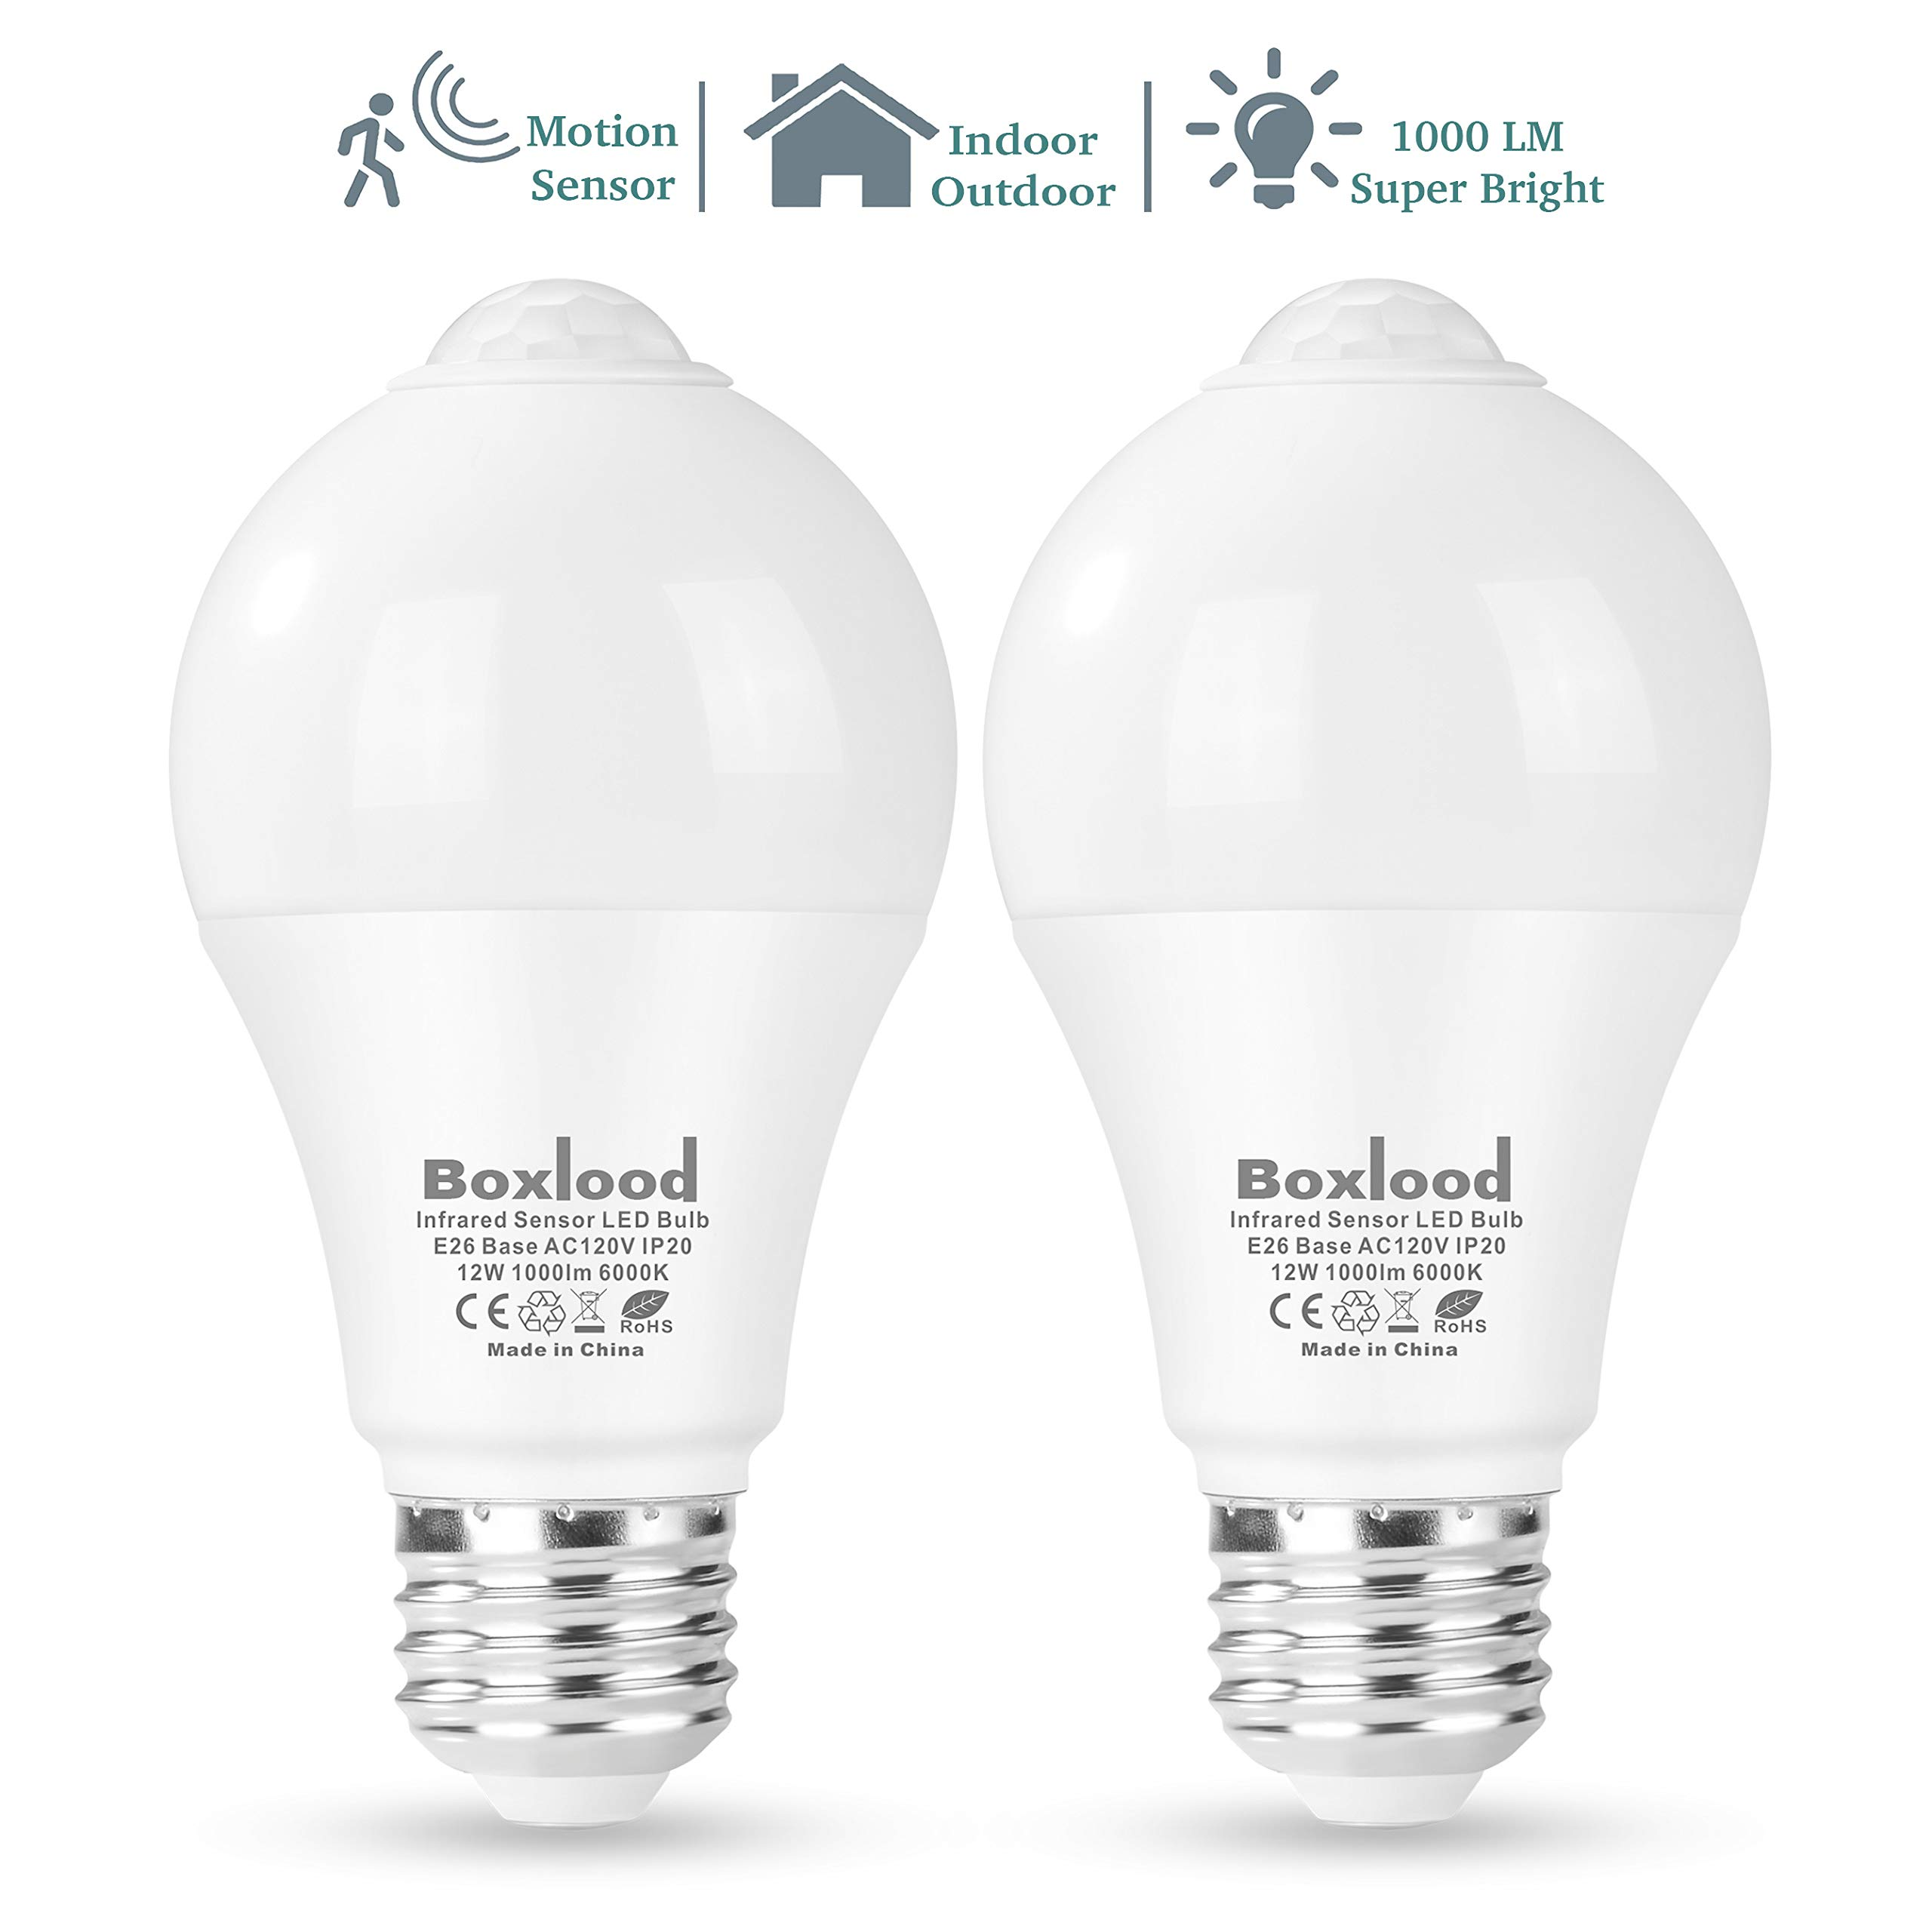 Boxlood Motion Sensor Light Bulb, Automatic Activated by Movement Security LED Bulb Lamp, 12W(100W Equivalent), A19/E26/120V/6000K Daylight for Front Door,Basement,Garage Stairs,Hallway- 2Pack